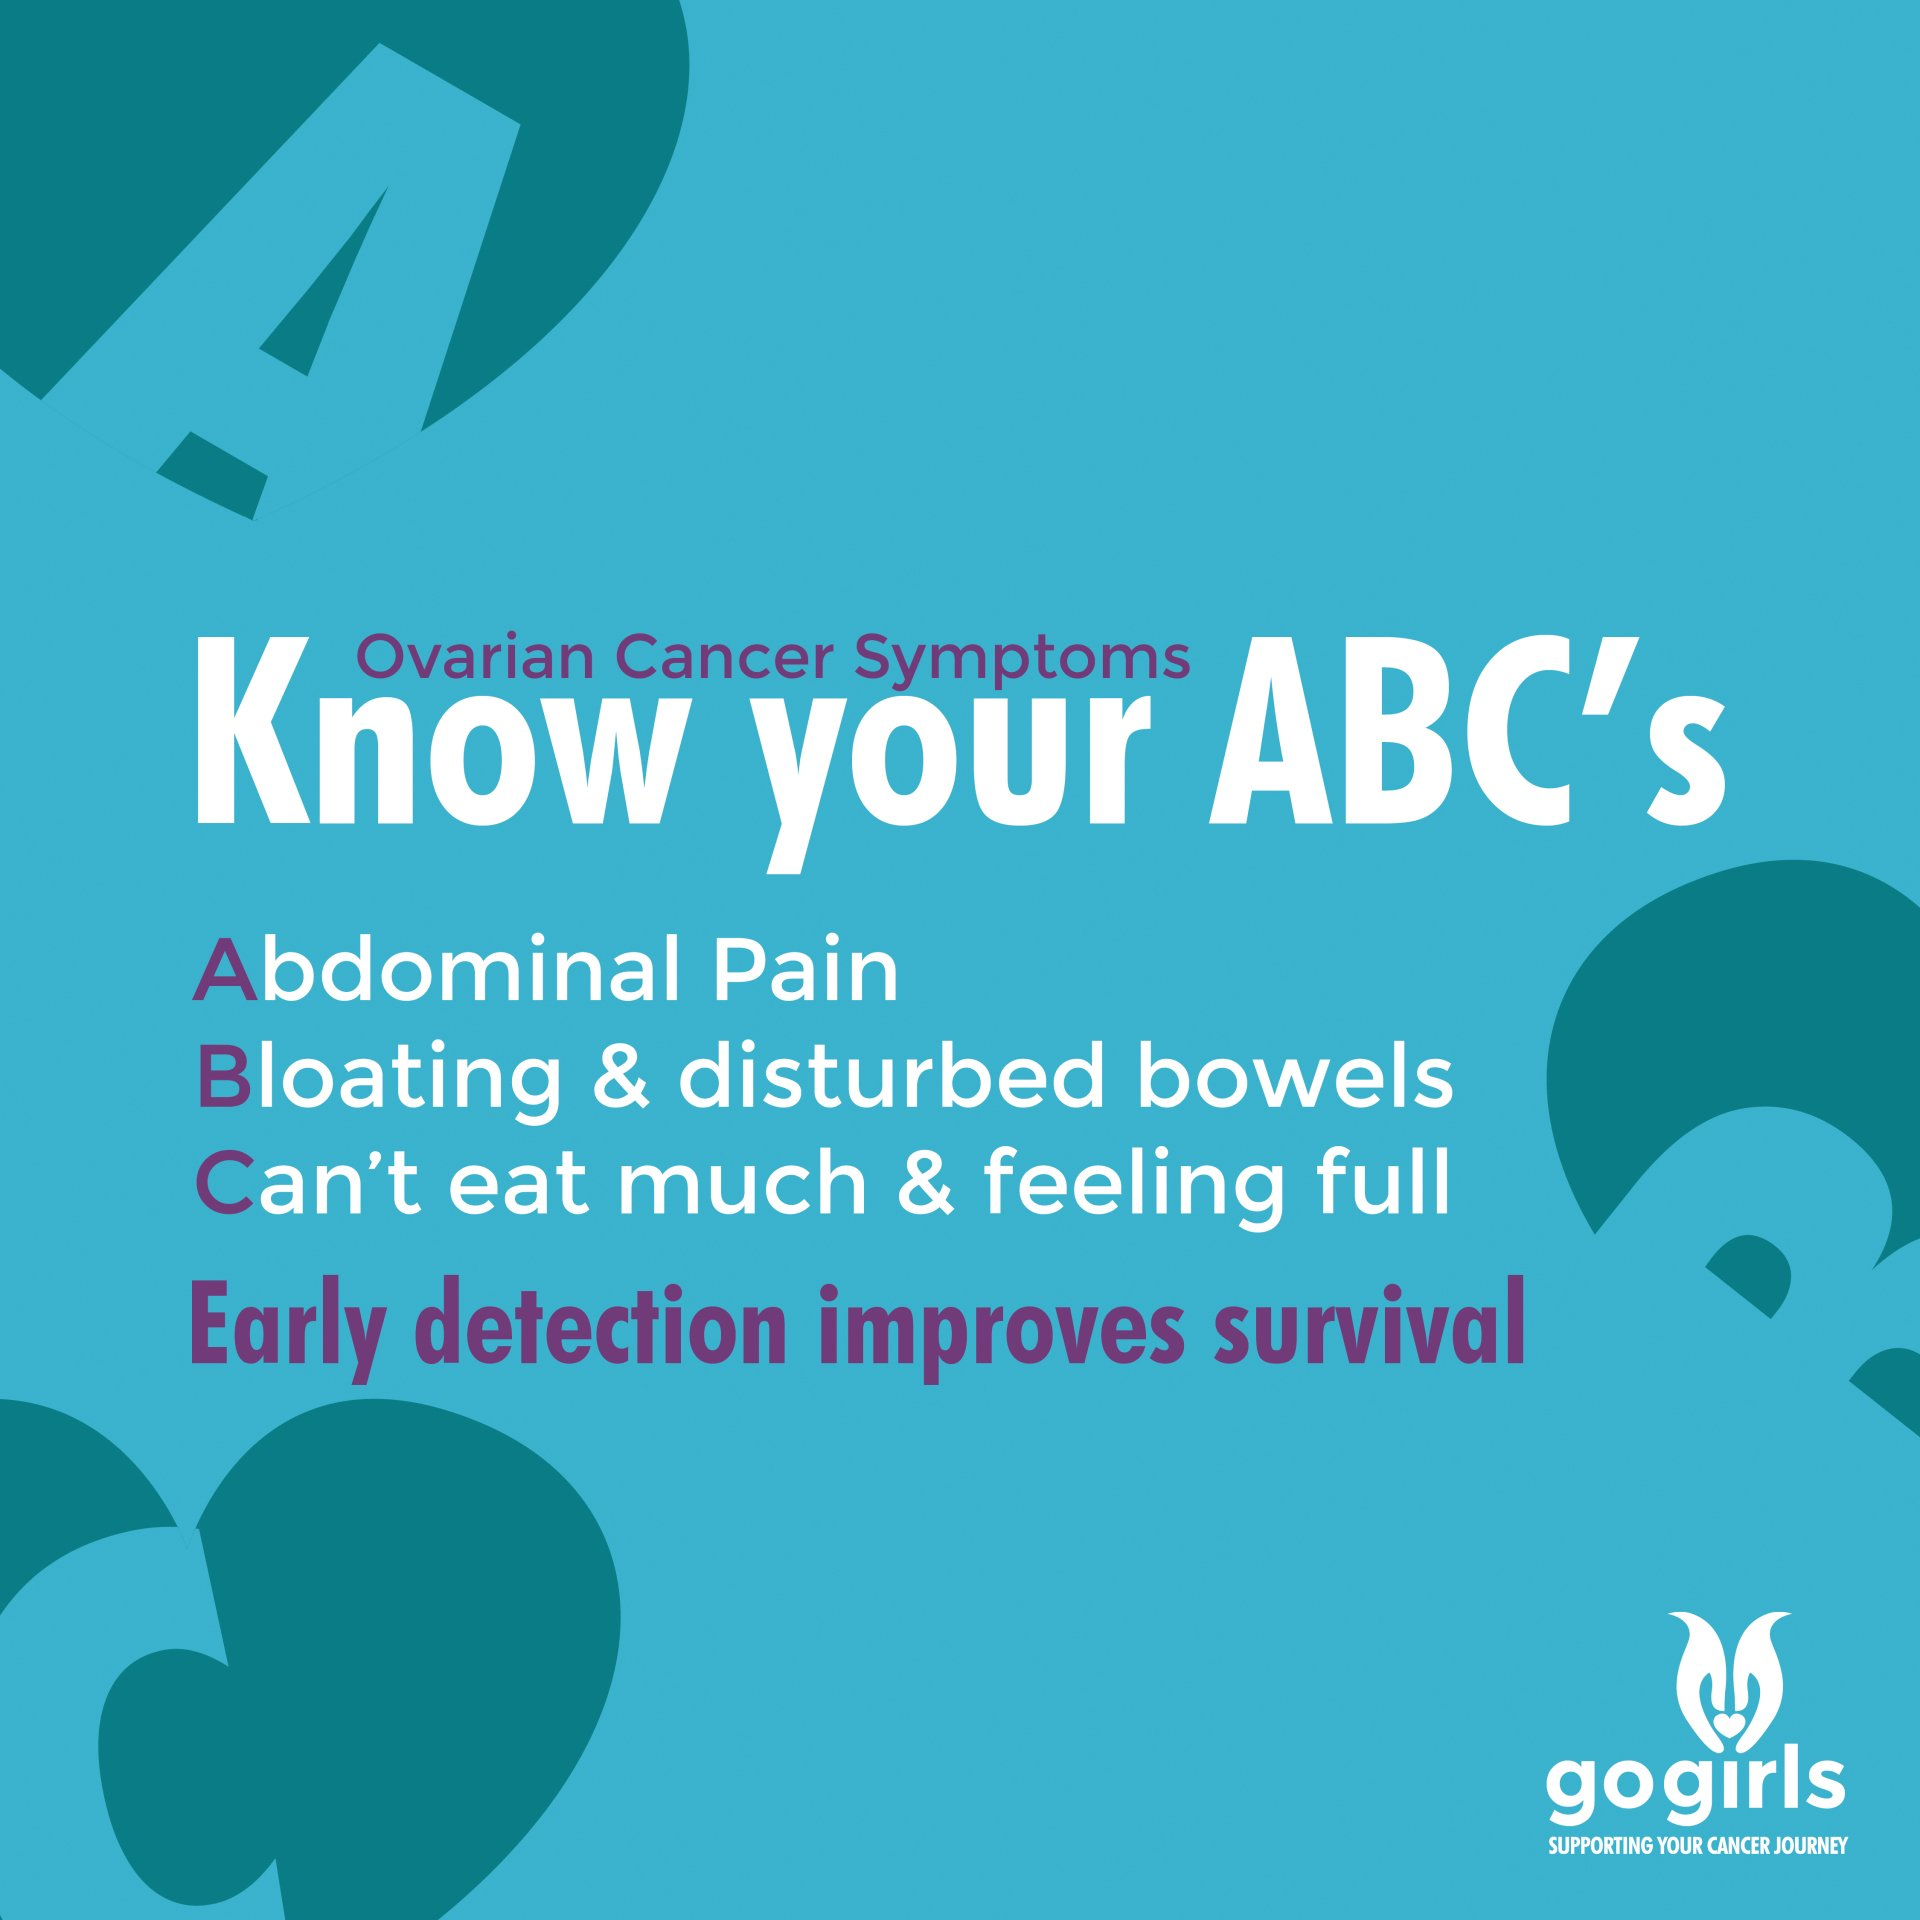 It S All Go At The Launch Of Go Girls Abc Campaign To Raise Awareness Of Ovarian Cancer